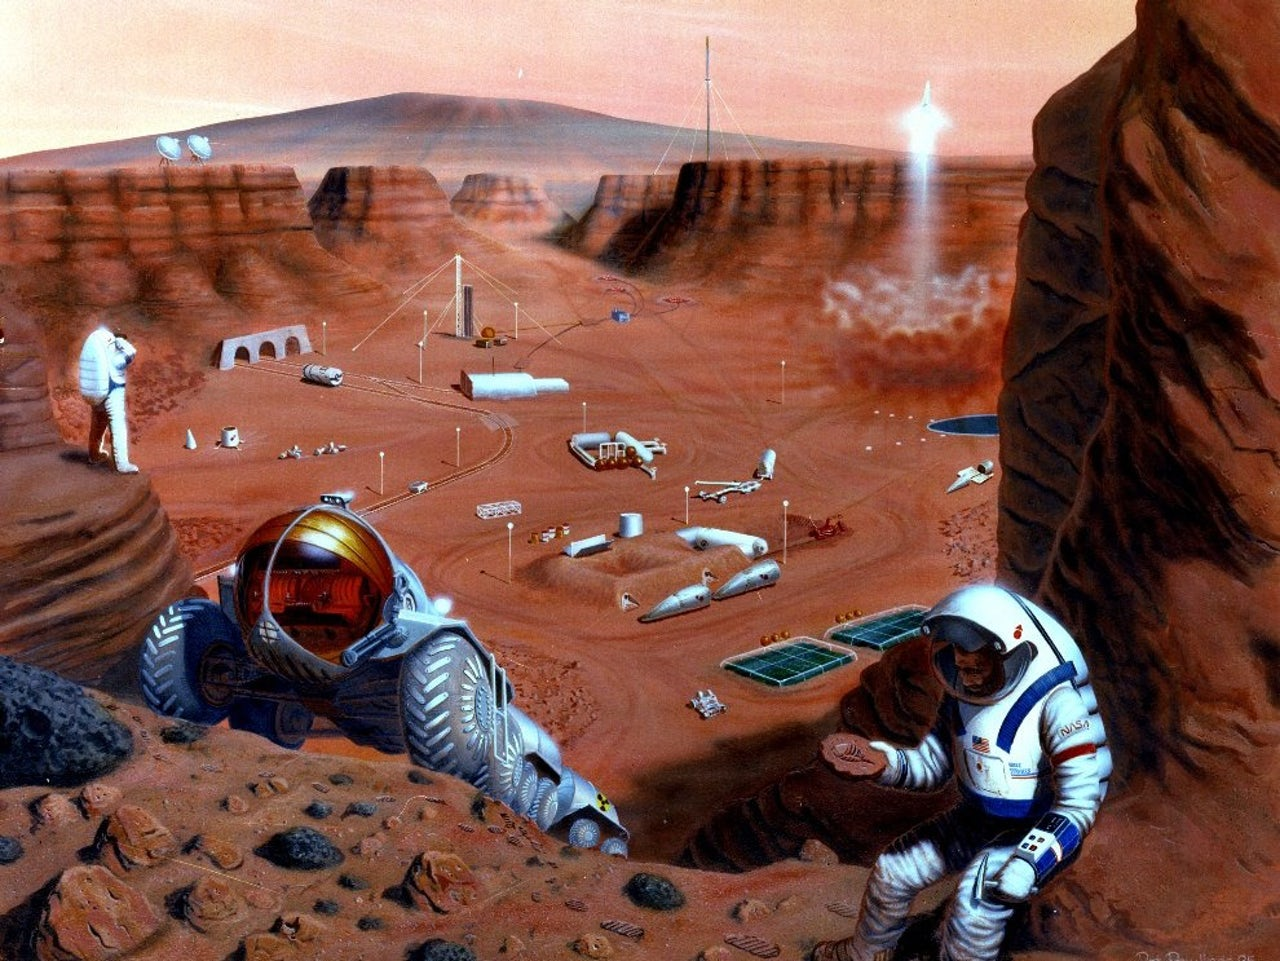 Conceptual art of a manned exploration of Mars.